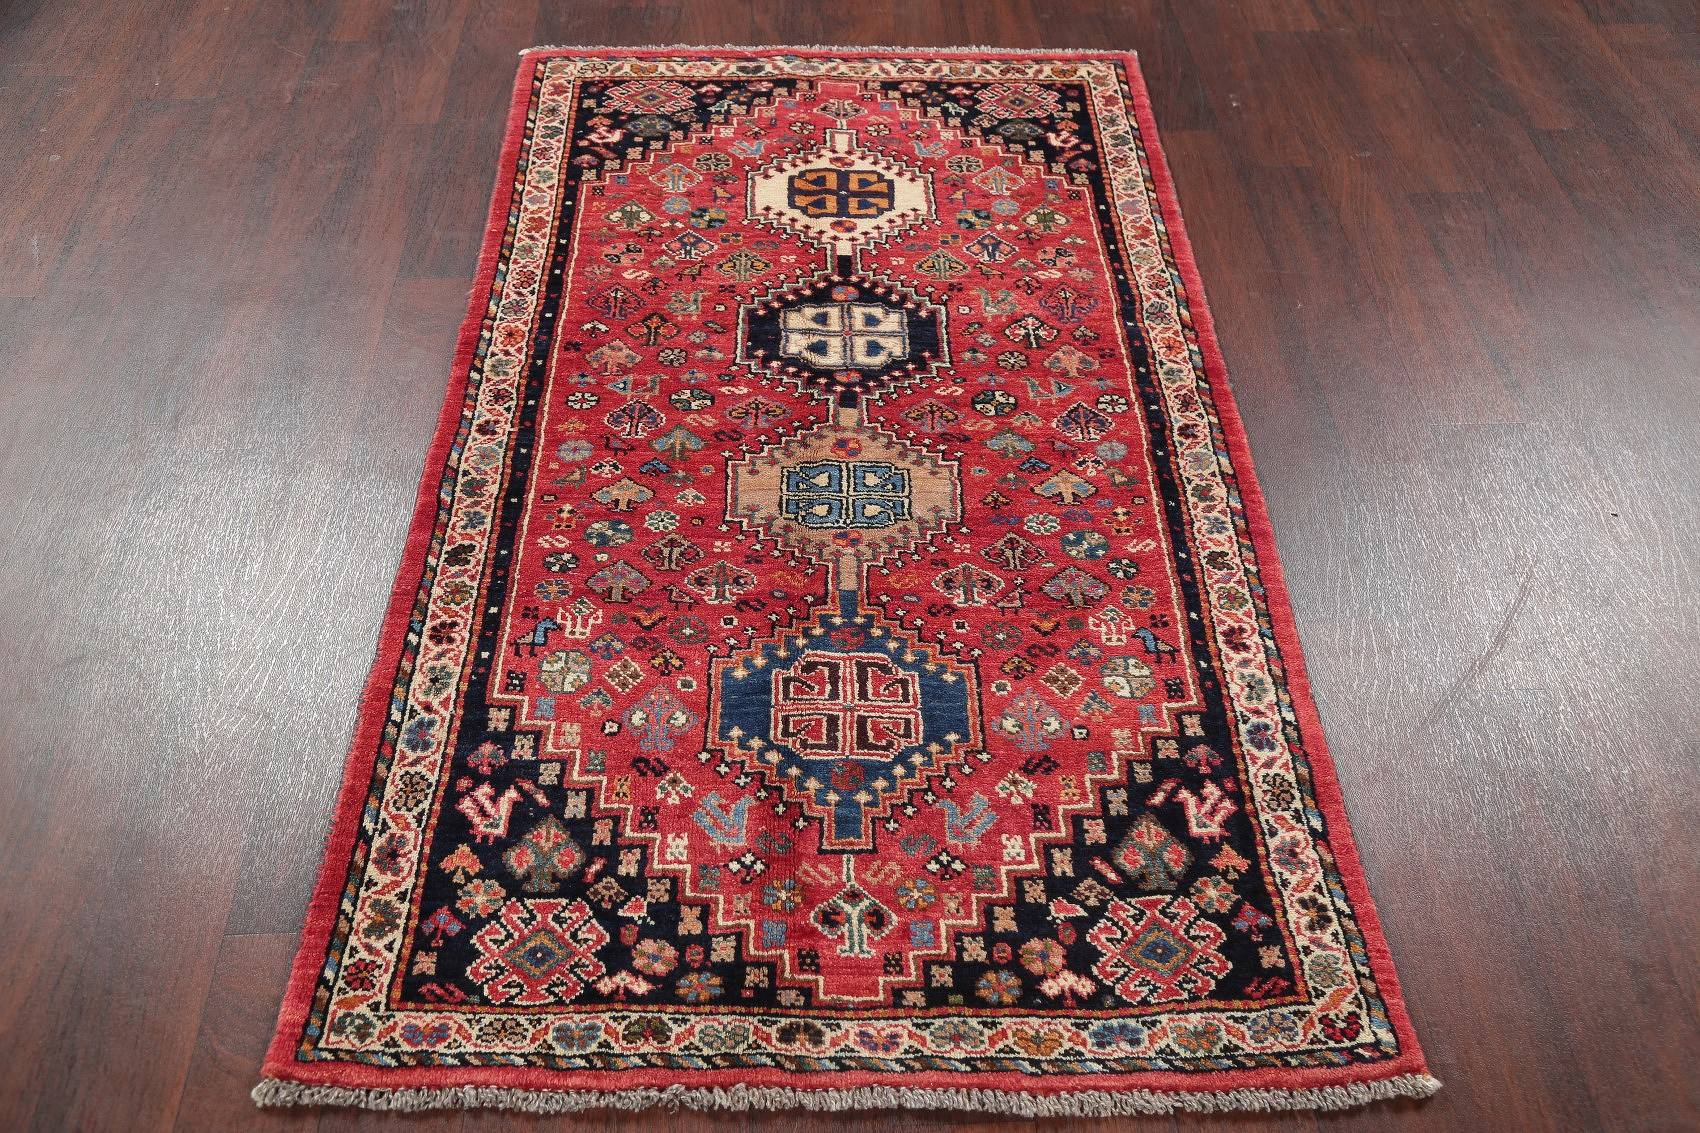 One-of-a-Kind Tribal Shiraz Persian Hand-Knotted 3x6 Runner Rug